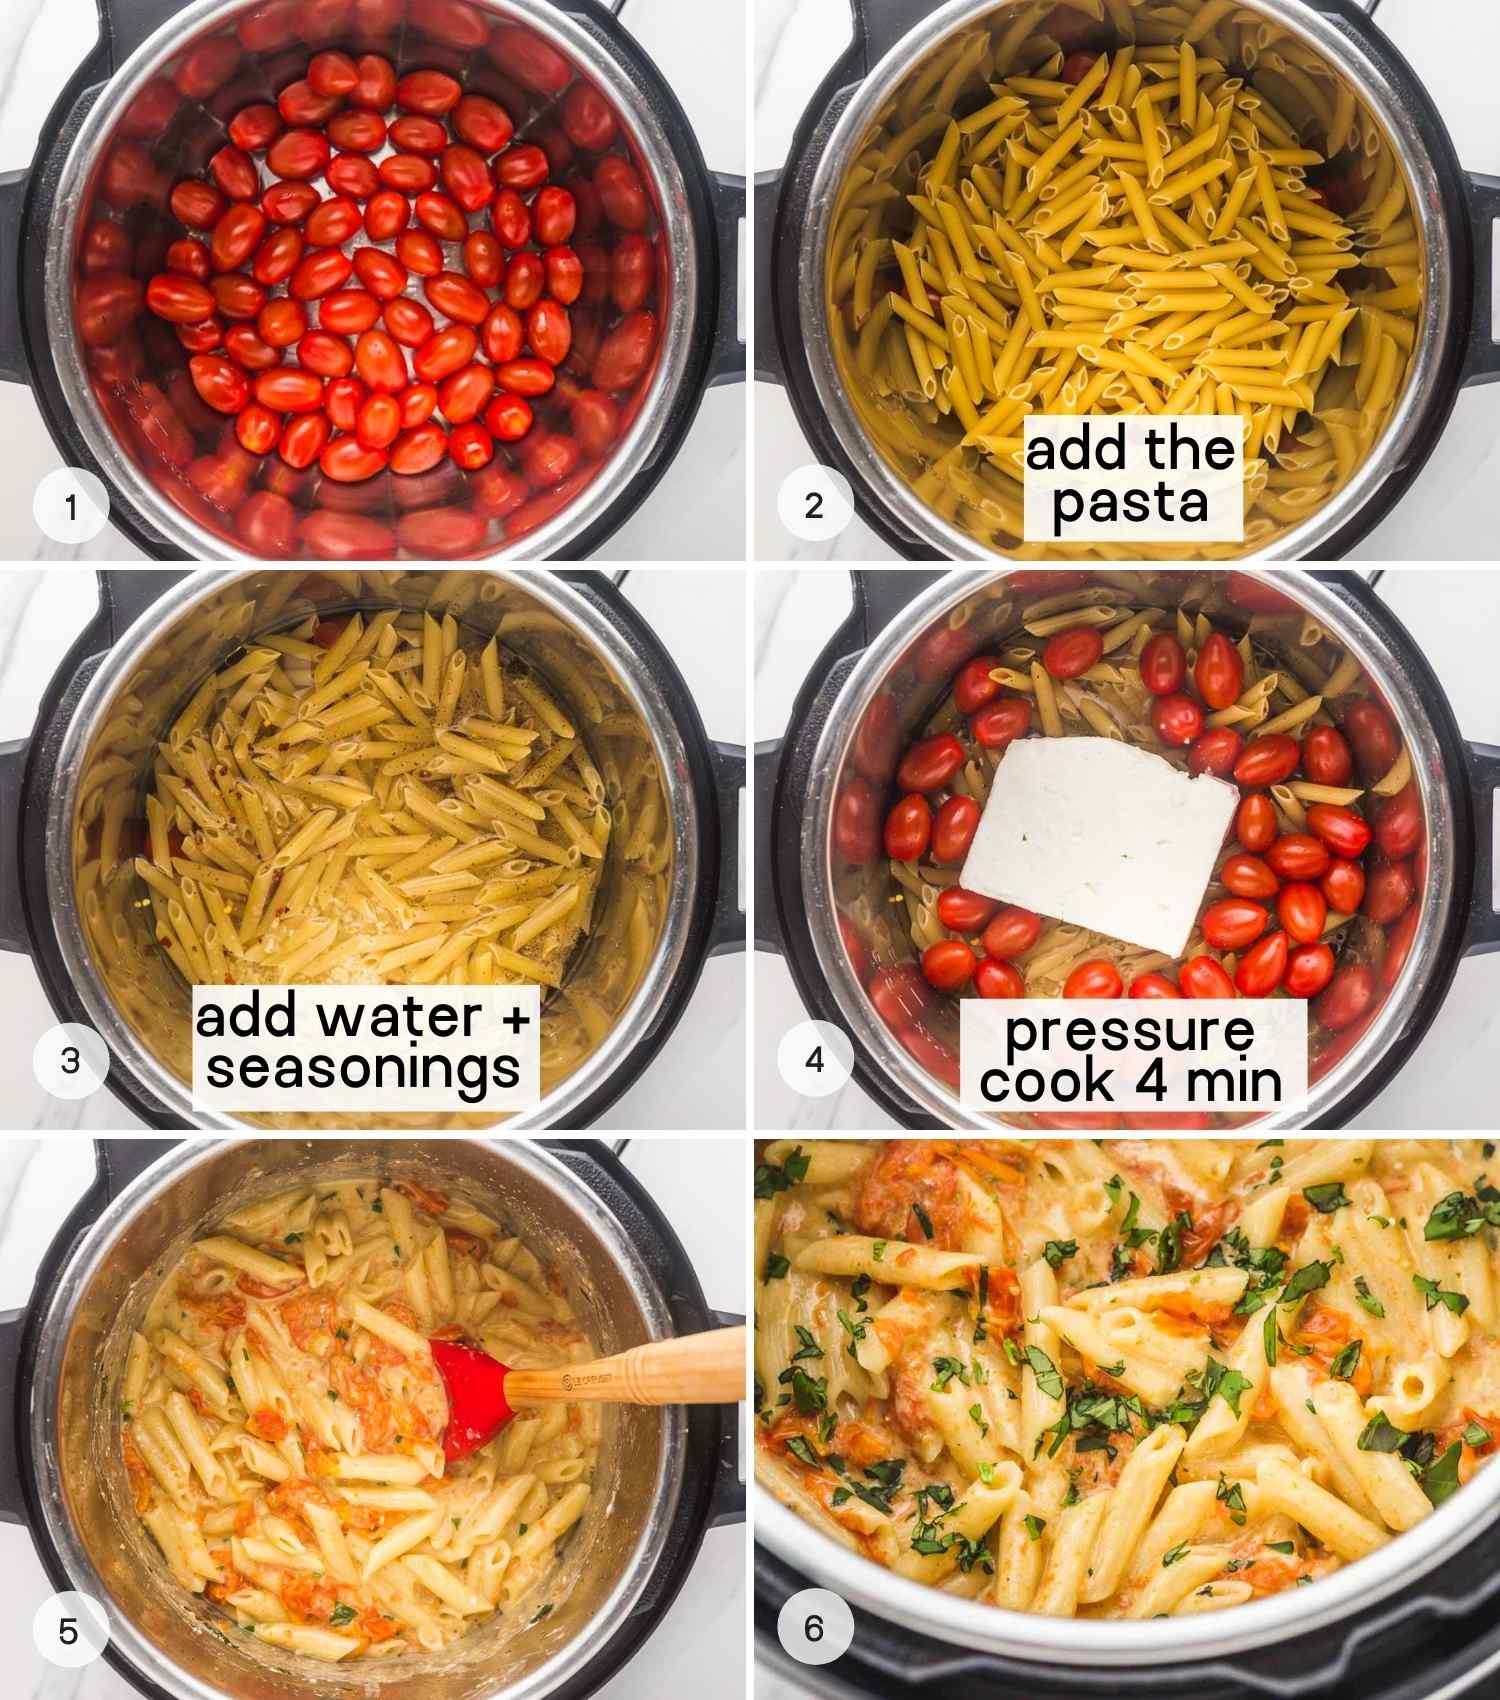 6 images in a collage how to make feta pasta in the instant pot